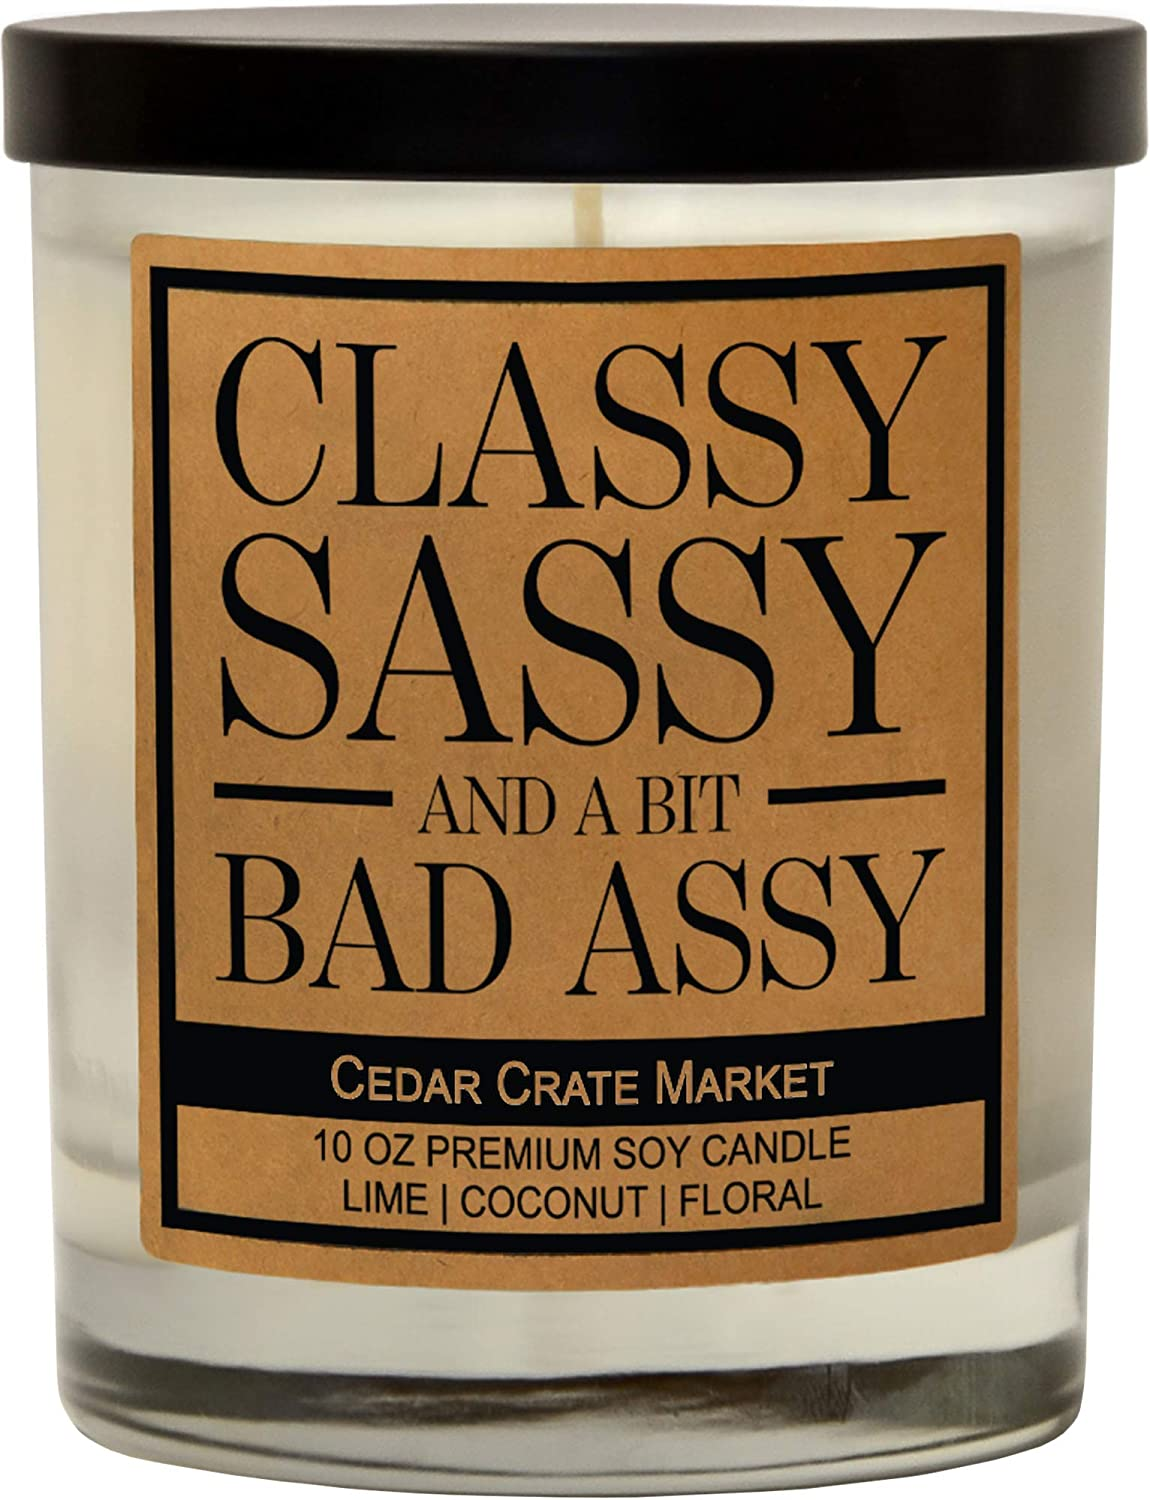 Sassy Candle for Women, Scented 100% Soy Candle, Funny Candle for Birthday, Christmas, Divorce, Retirement, Going Away, Moving, Best Friend, Bestie, Mom, Wife, Friend or Sister